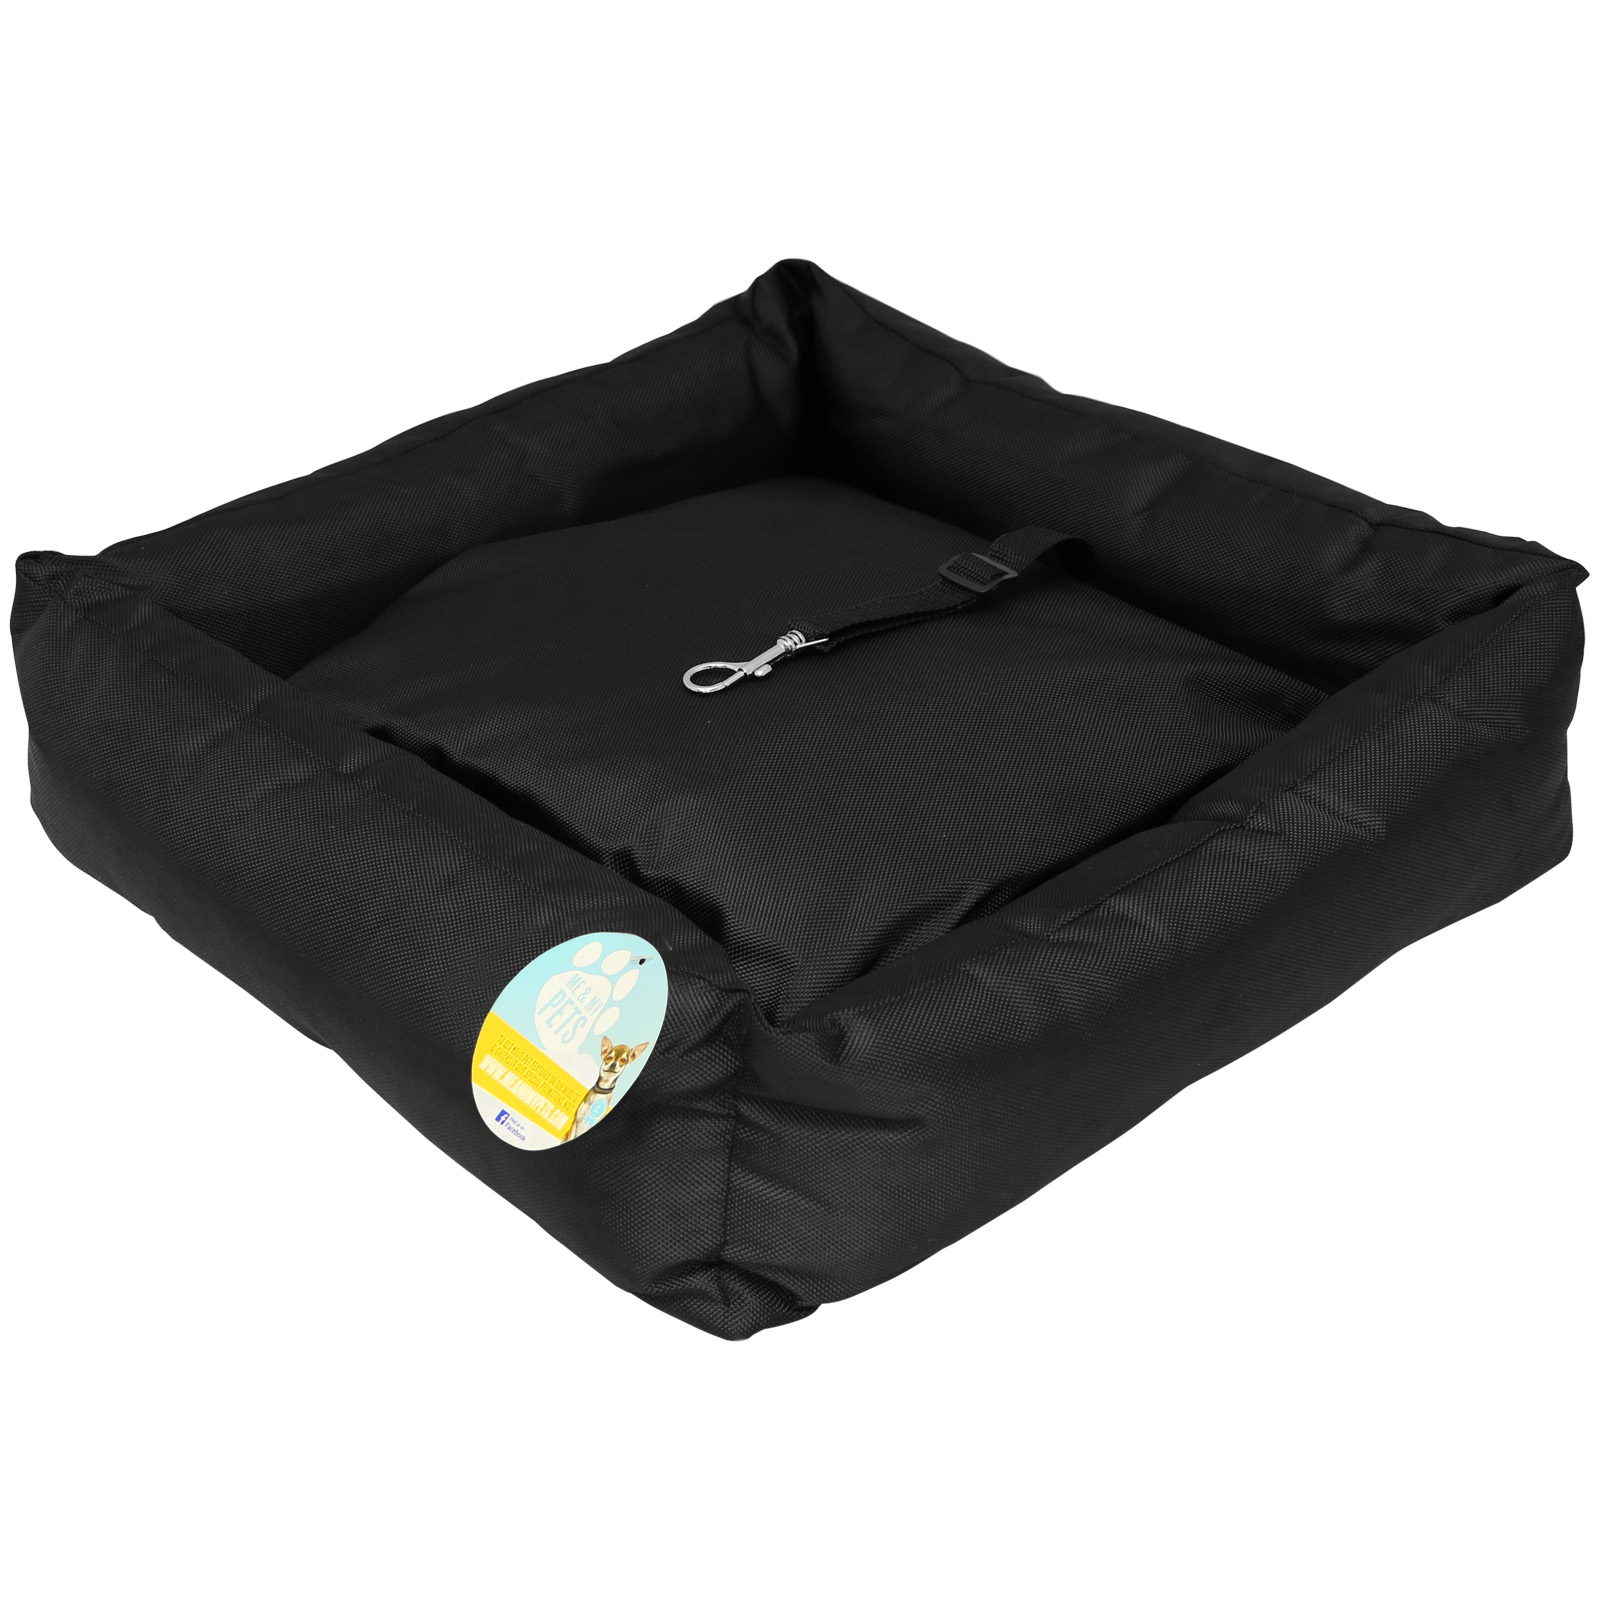 me my black pet dog puppy car seat bed comfort travel mat cushion protector ebay. Black Bedroom Furniture Sets. Home Design Ideas